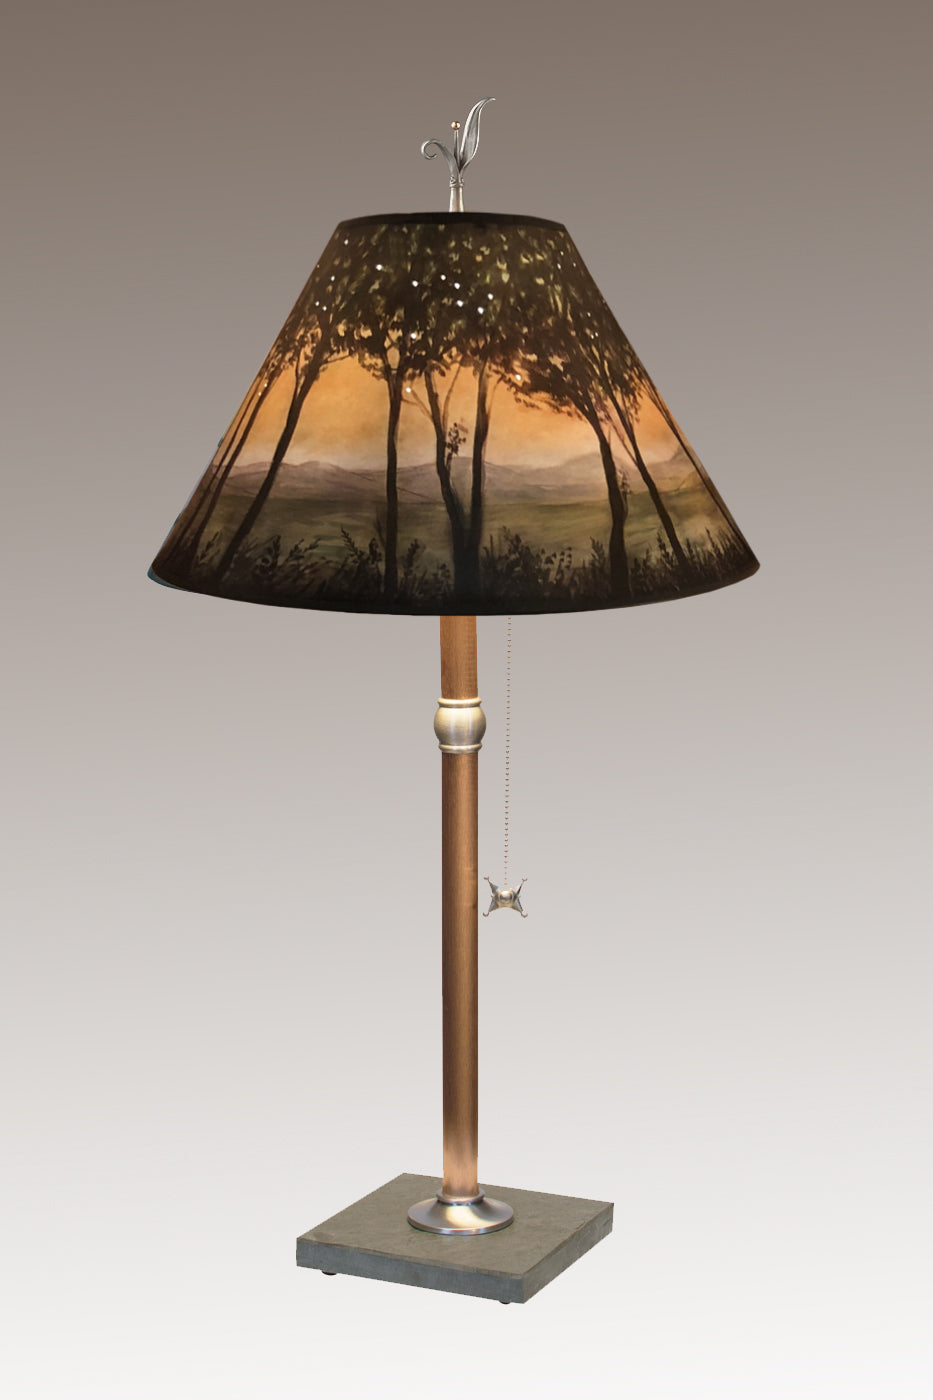 Copper Table Lamp on Vermont Slate with Medium Conical Shade in Dawn